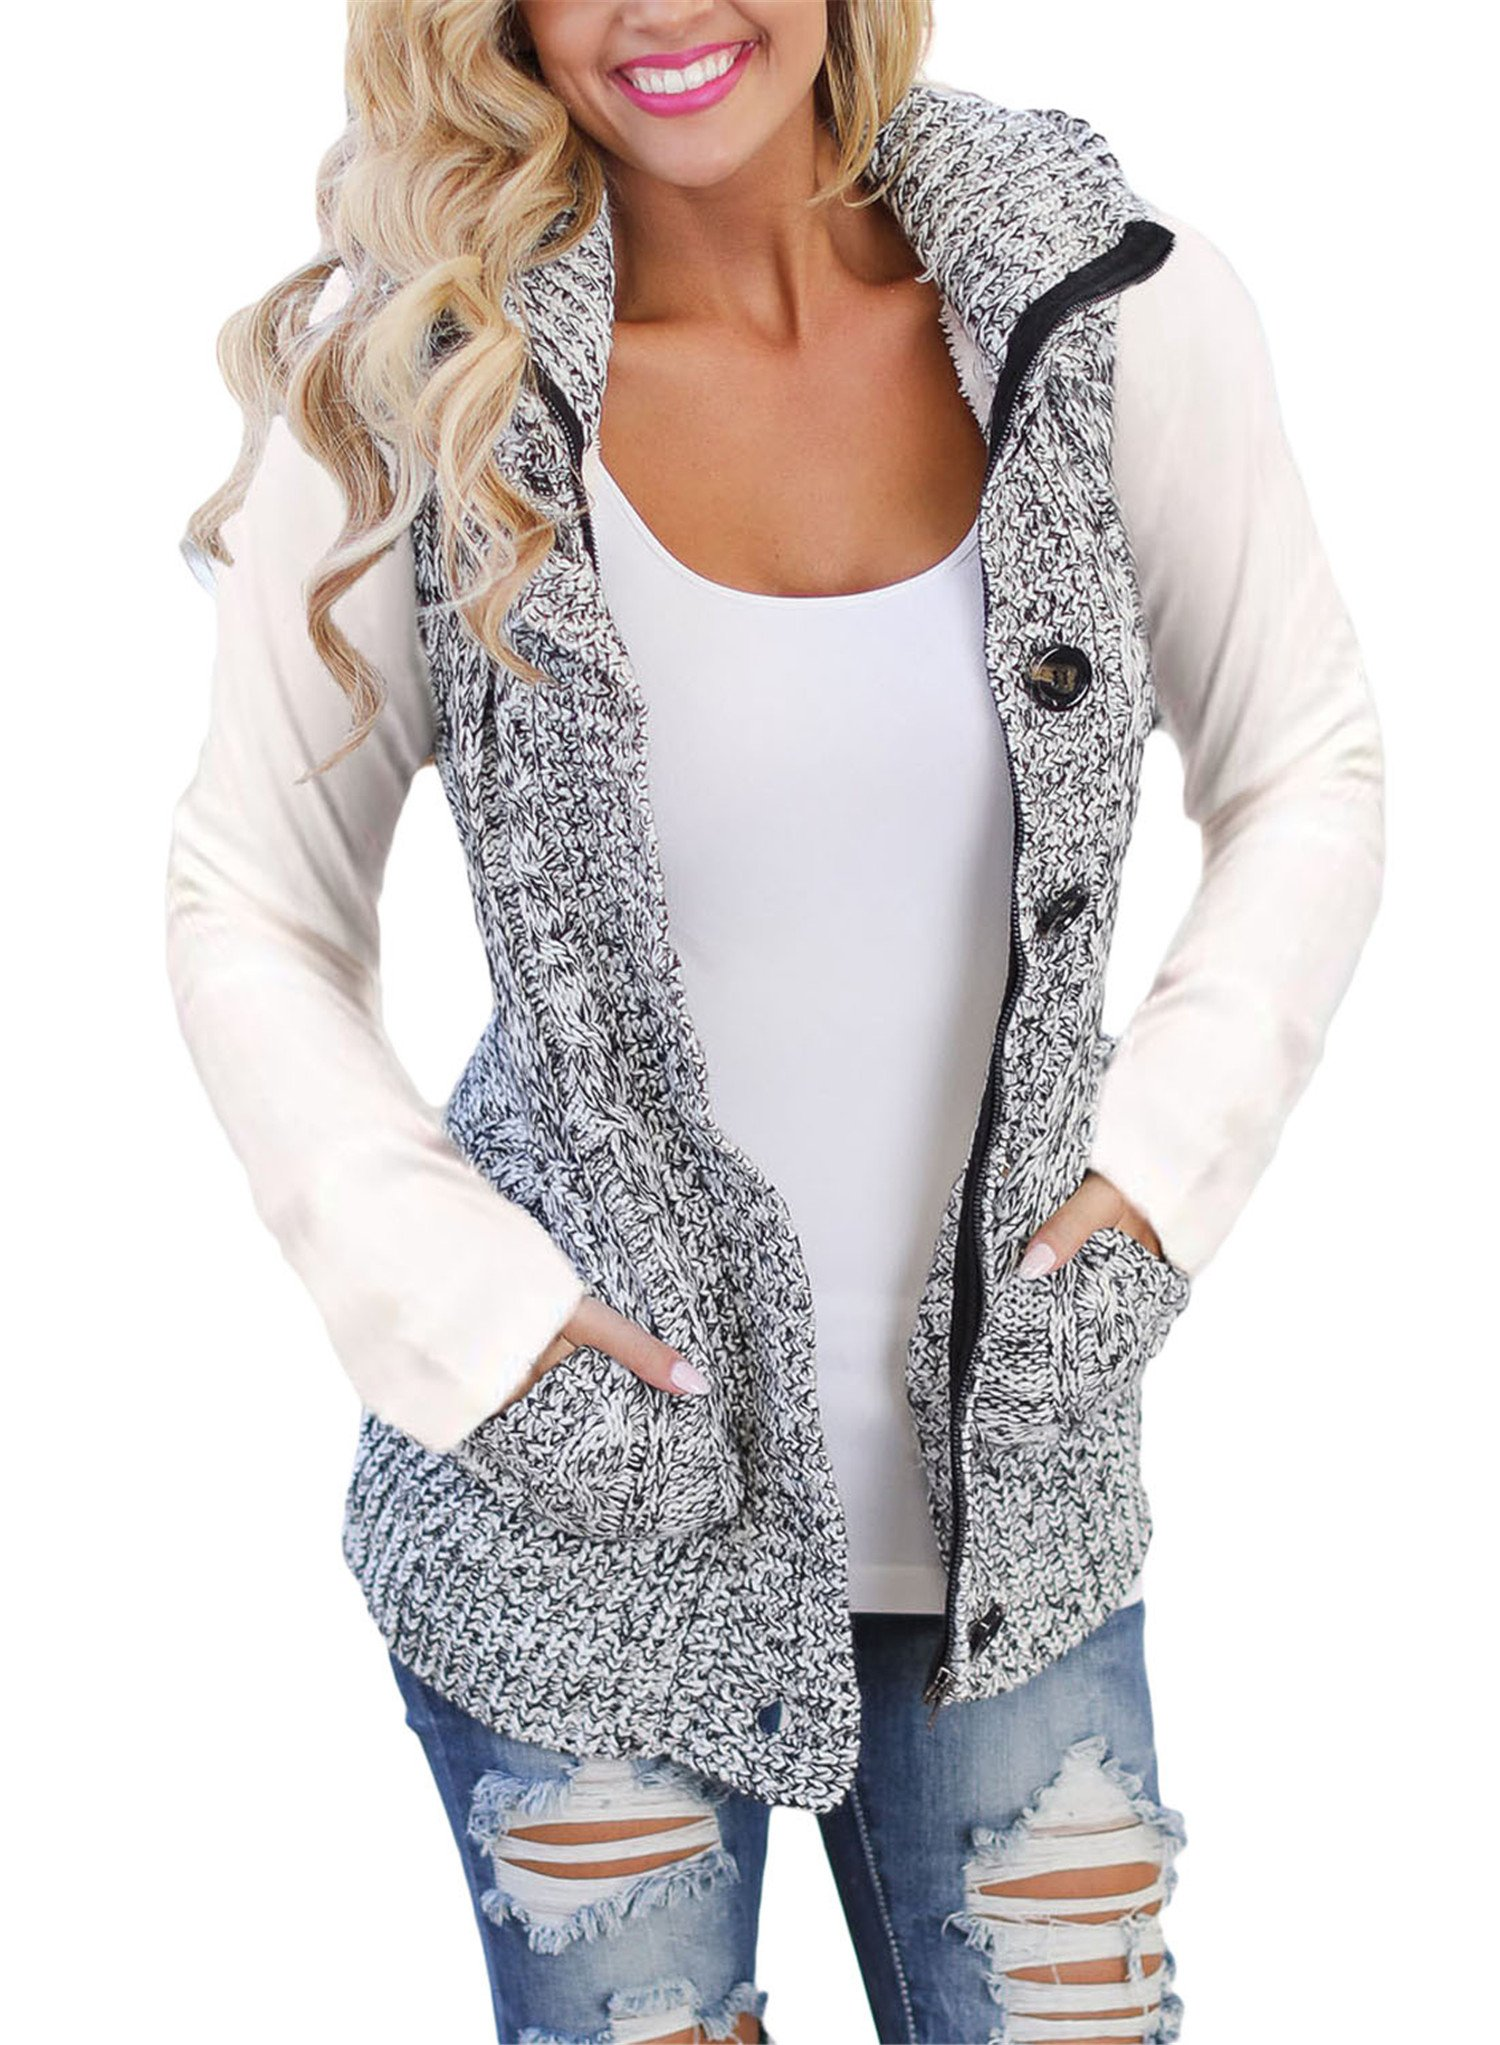 Blibea Womens Sleeveless Hoodies Sweater Vest Button-up Cable Knit Open Front Cardigan Warm Coats Outerwear Jacket X-Large Grey